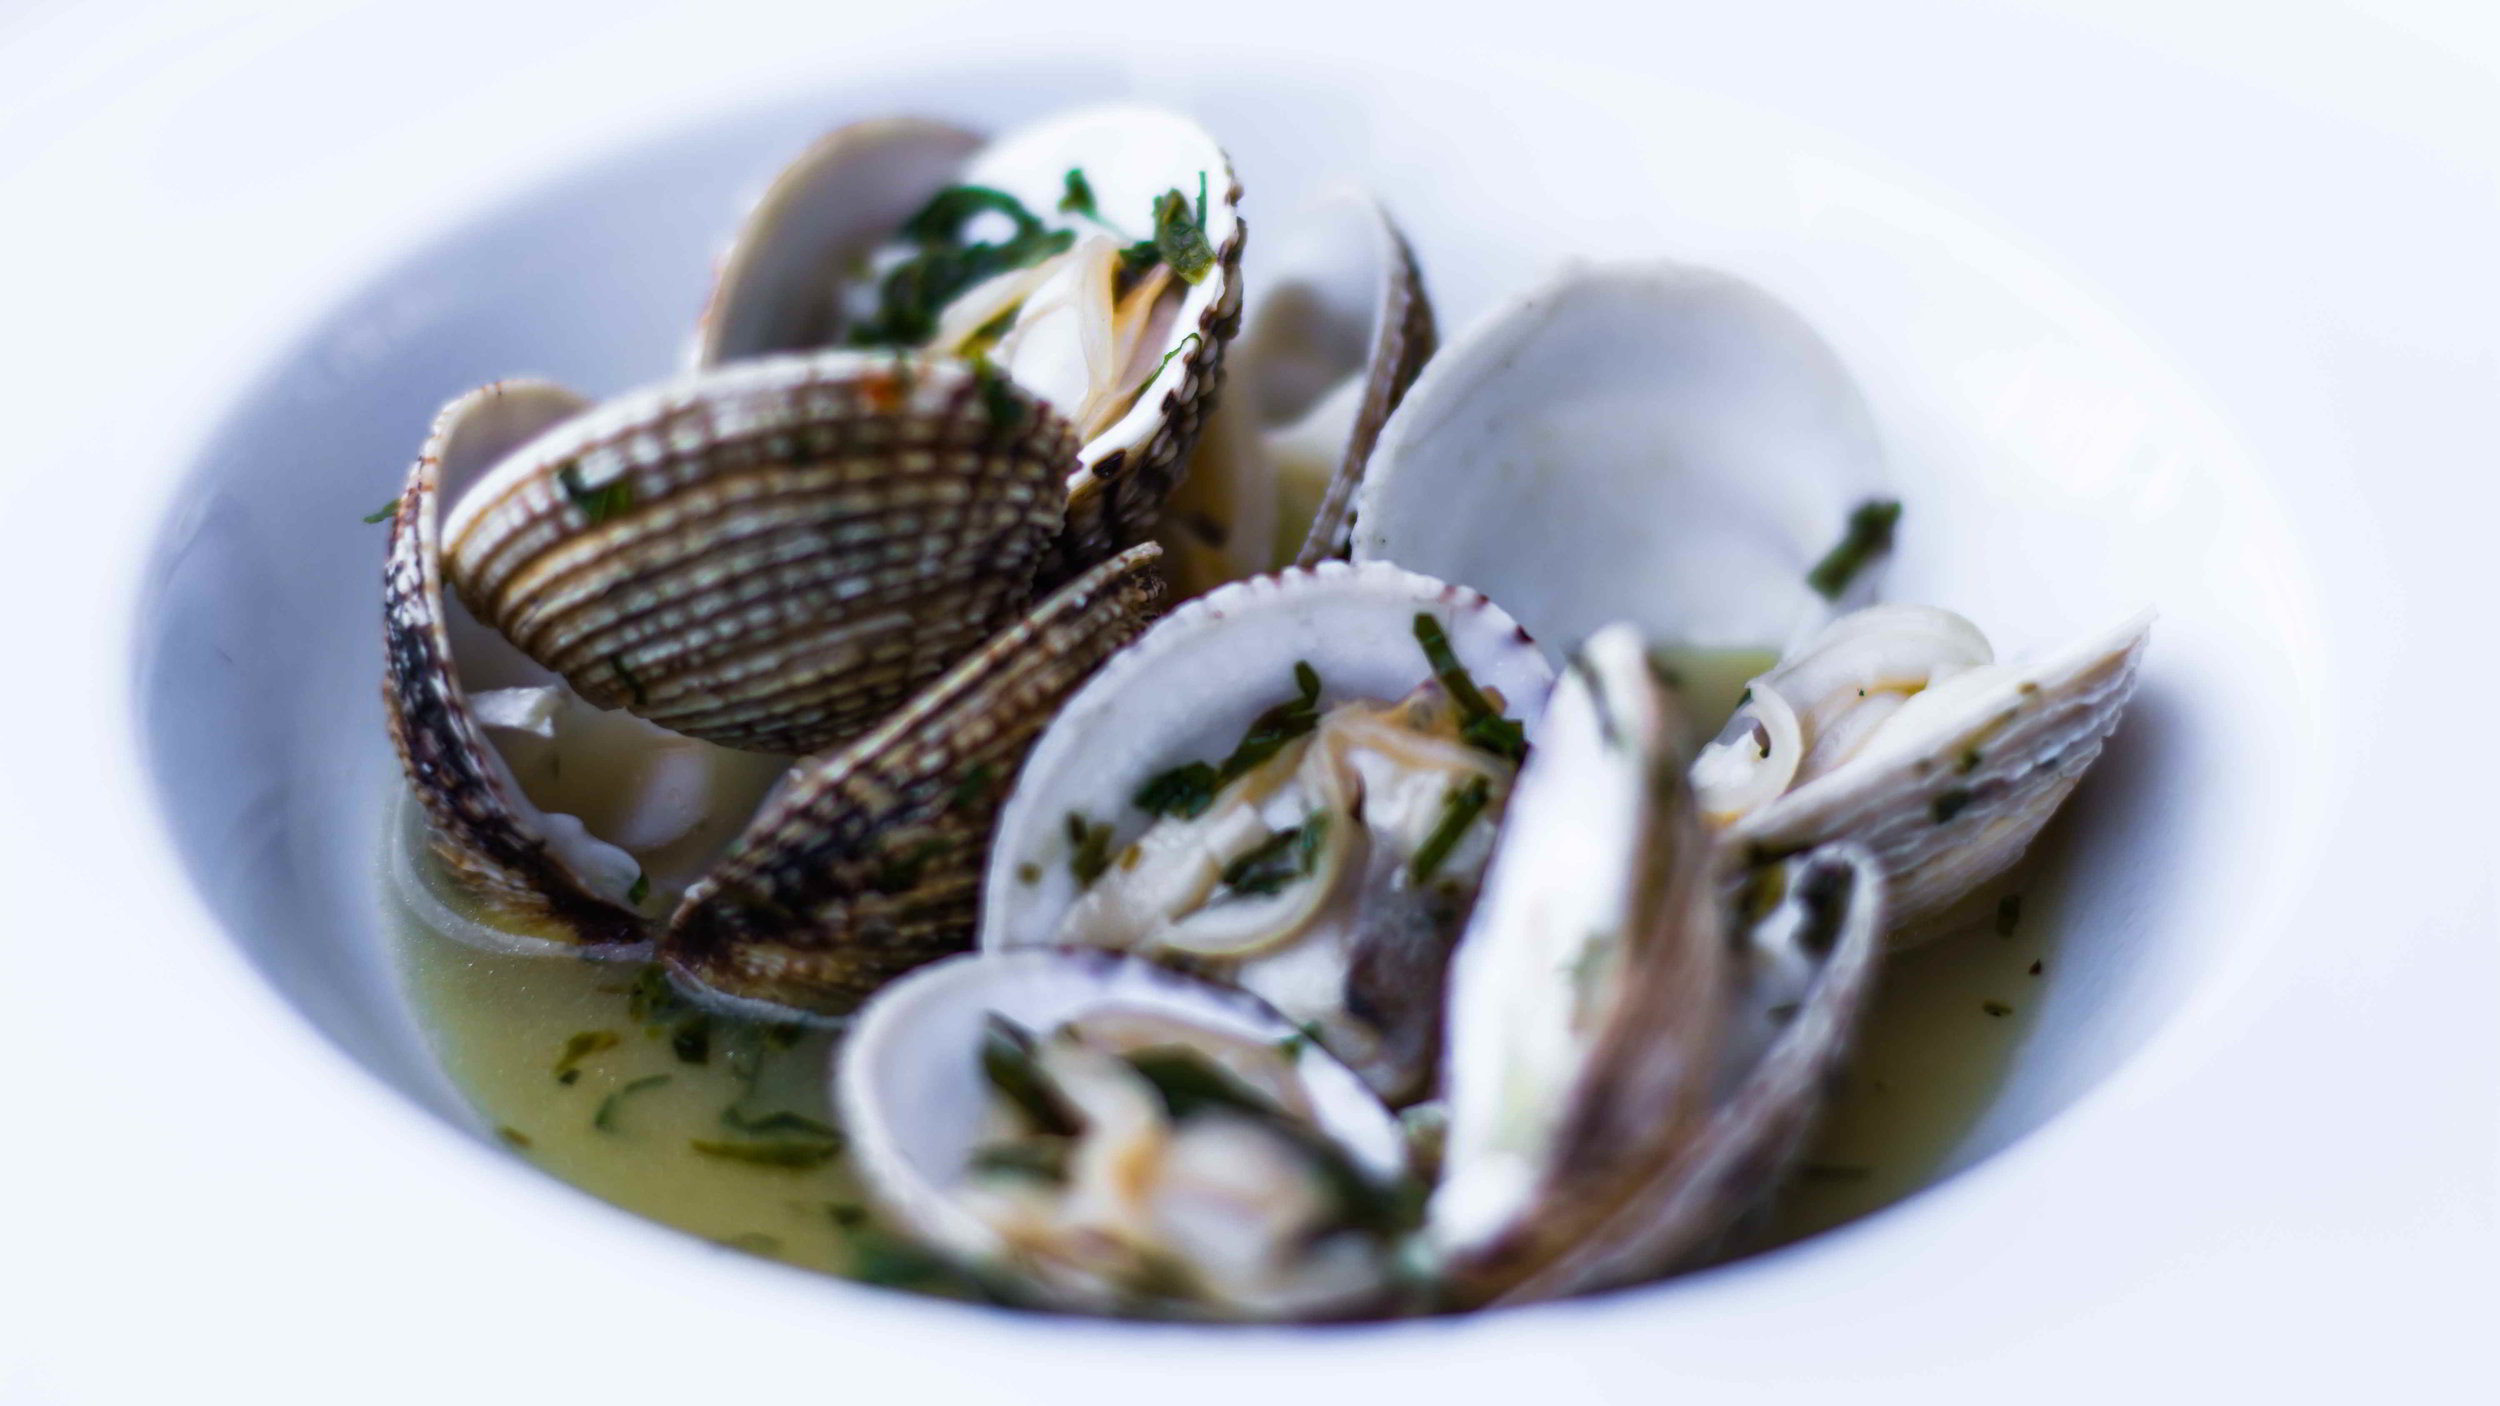 Varoulko_Seaside_Pireas_Greece_Clams.jpg